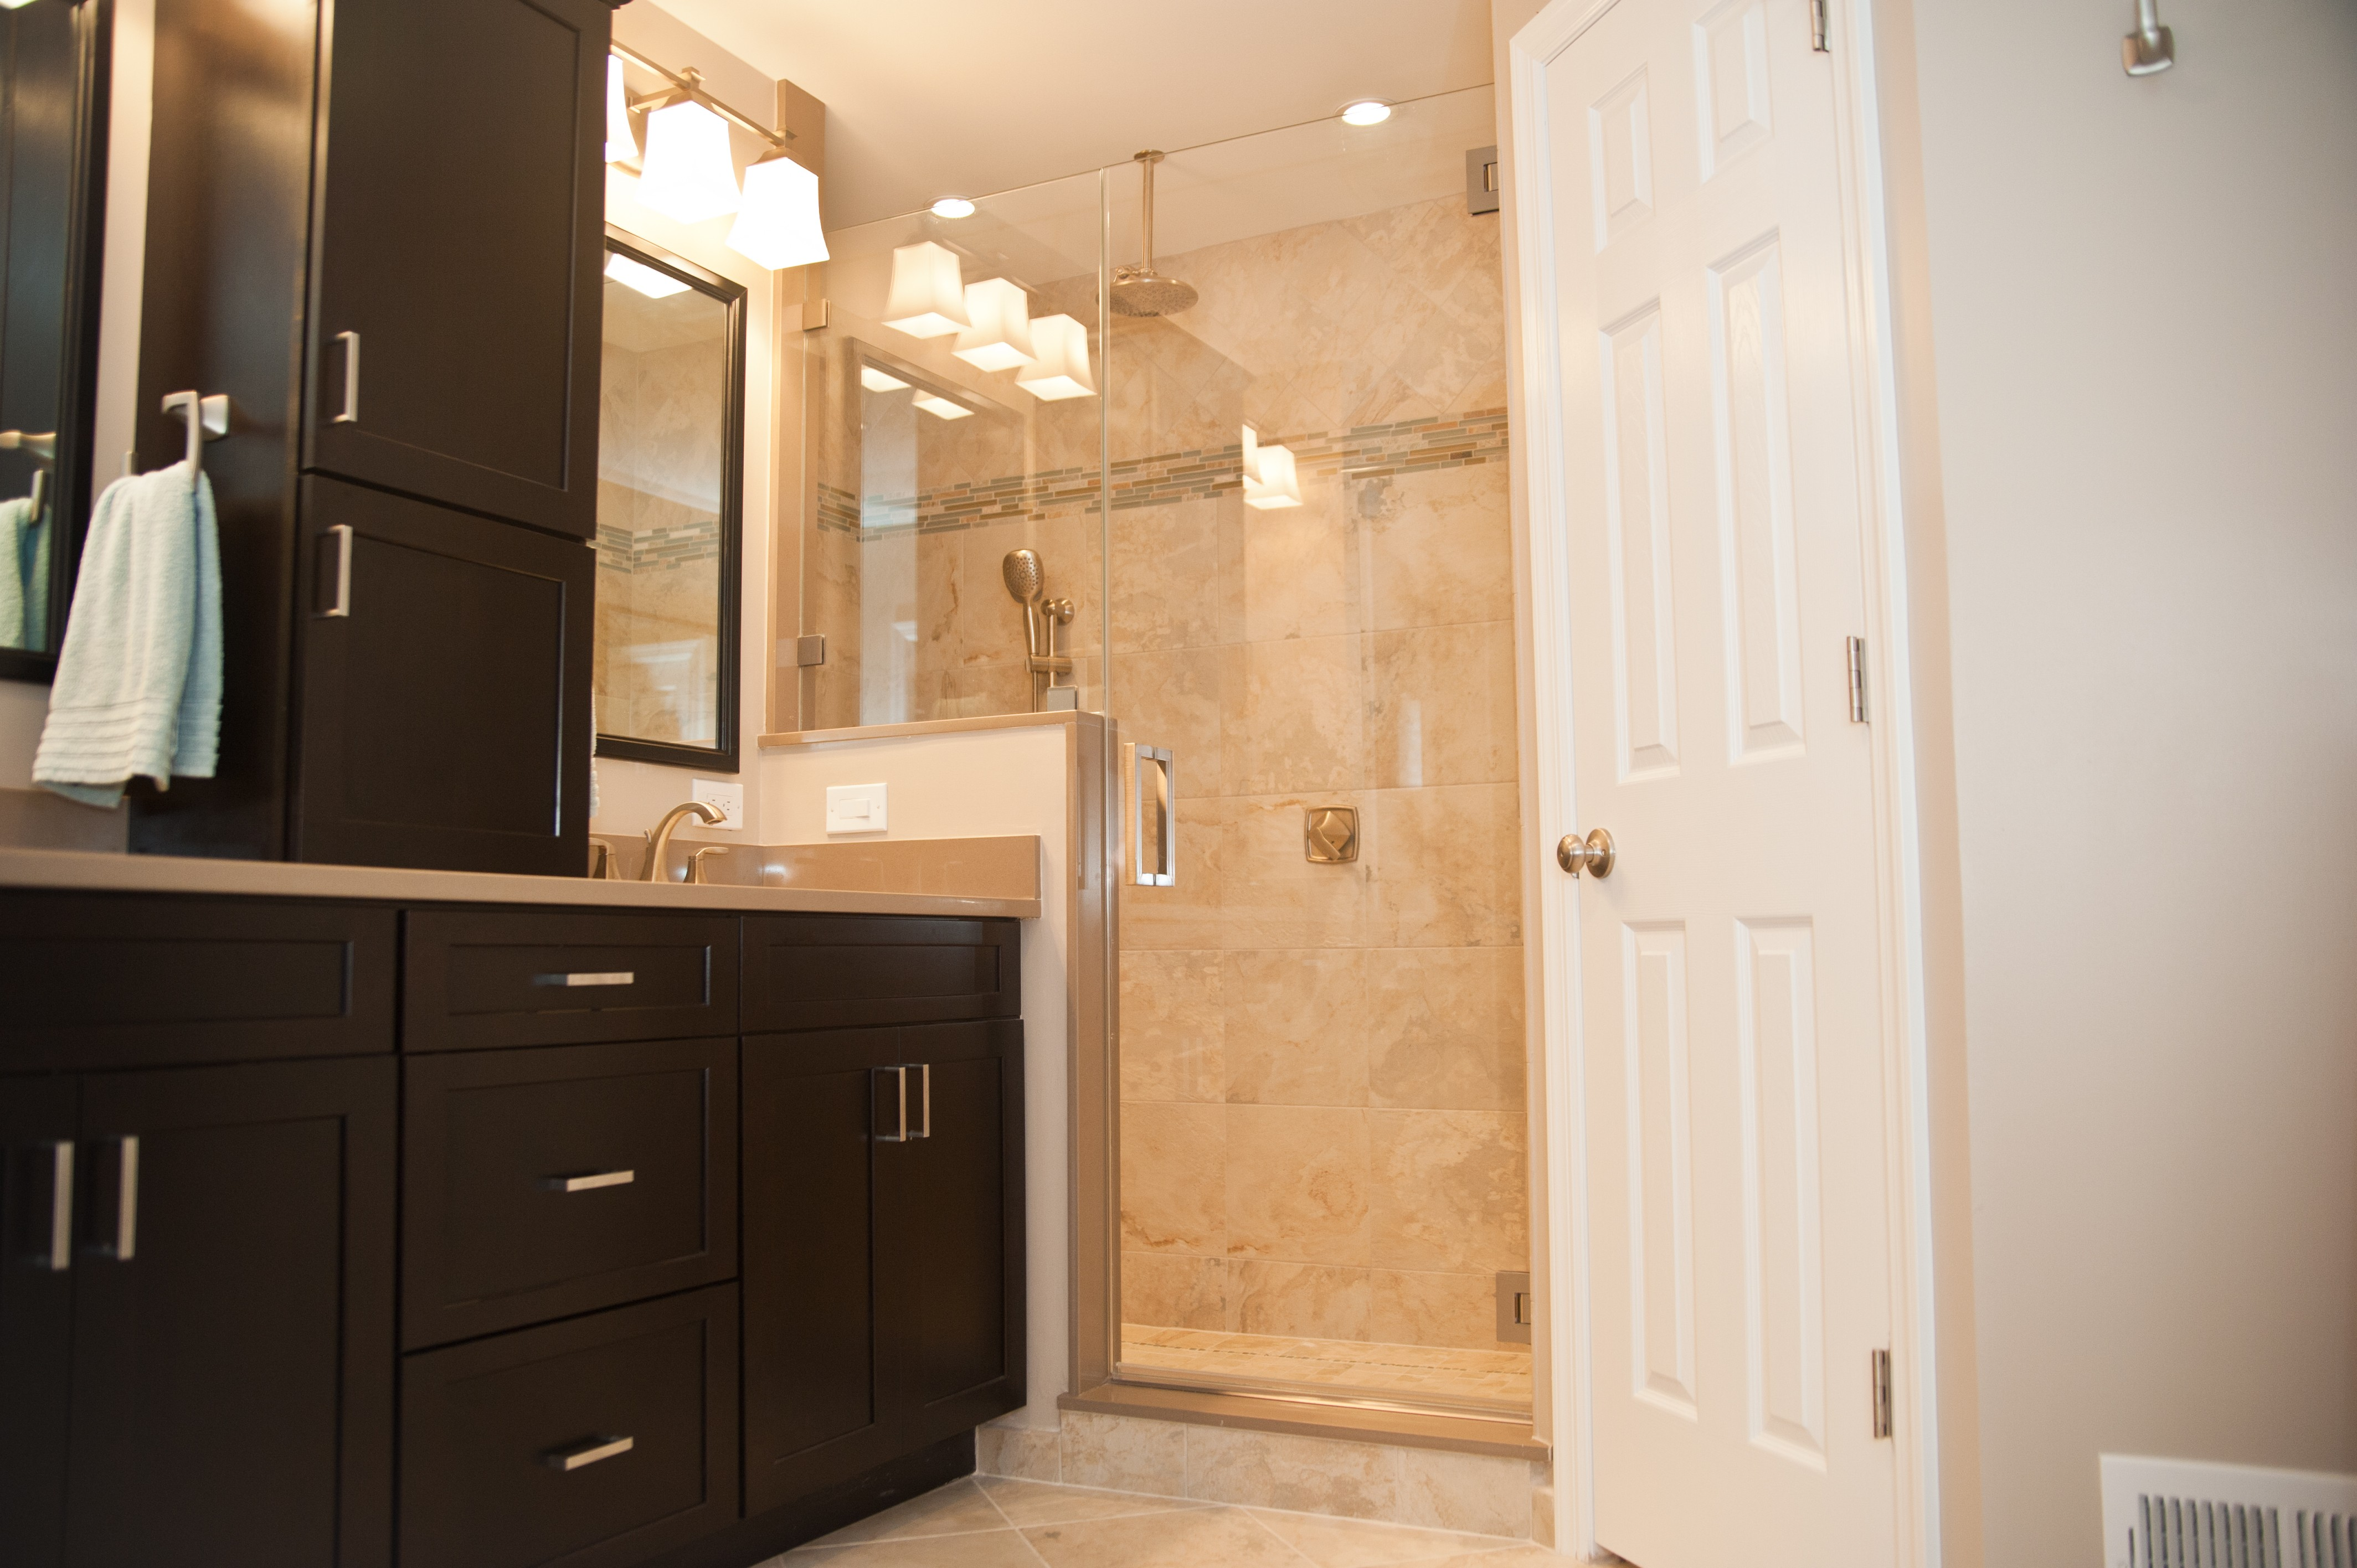 Bathroom Remodeling Toms River Nj nj bathroom remodeling tips - monmouth & ocean county